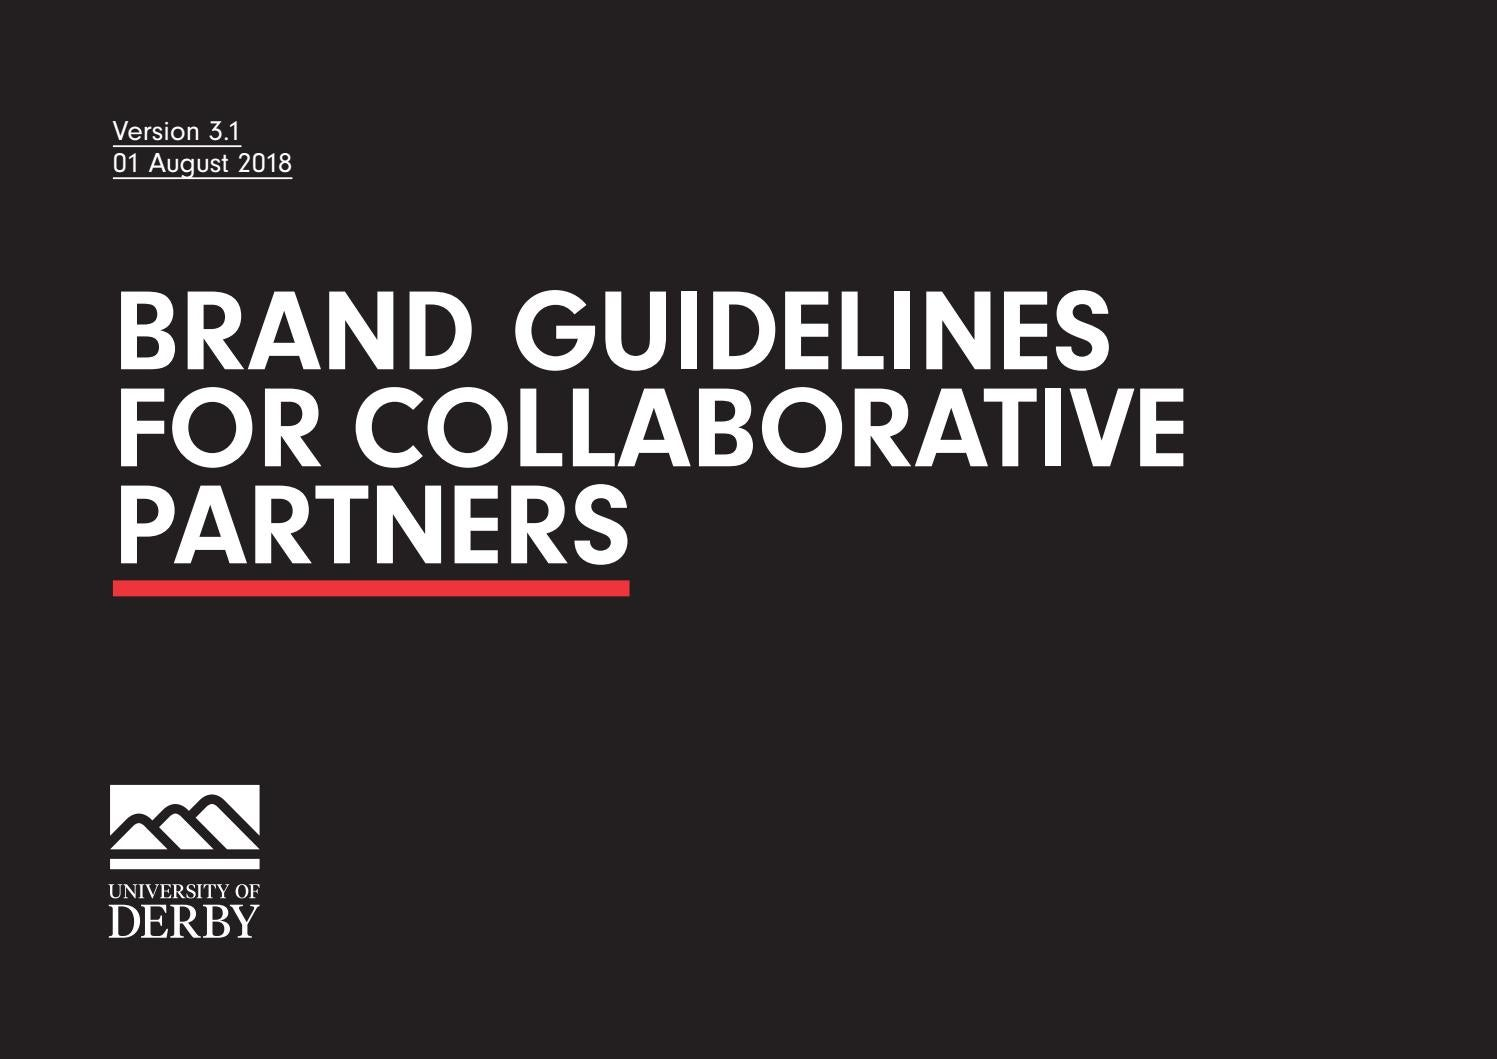 University of Derby Partnership Brand Guidelines by